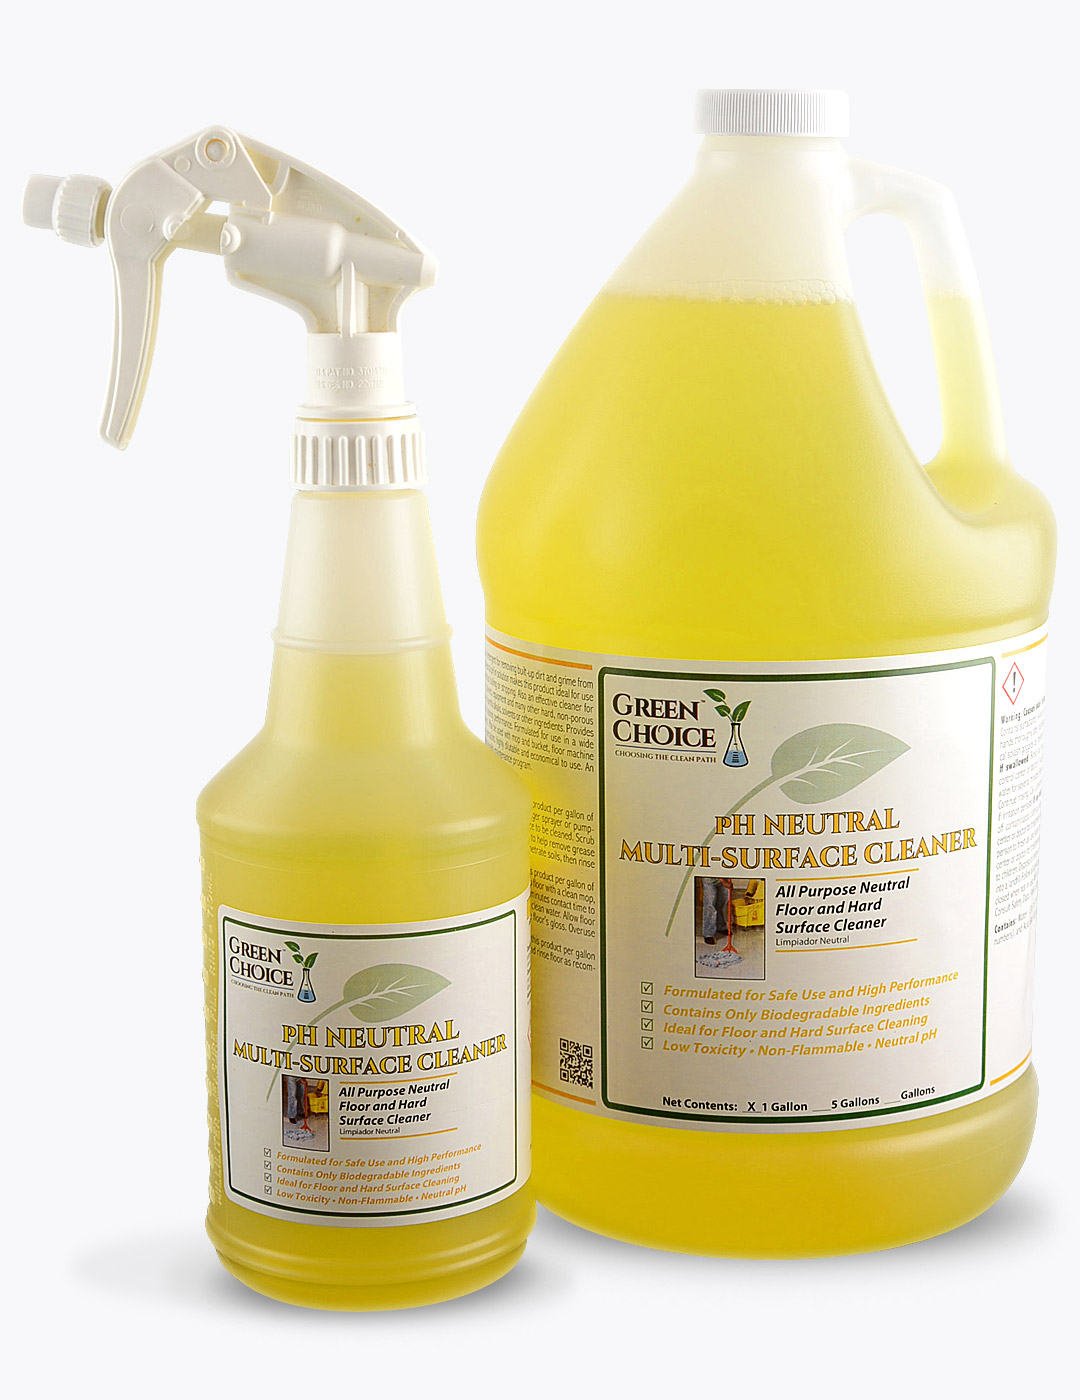 Green Choice pH Neutral Multi-Surface Cleaner